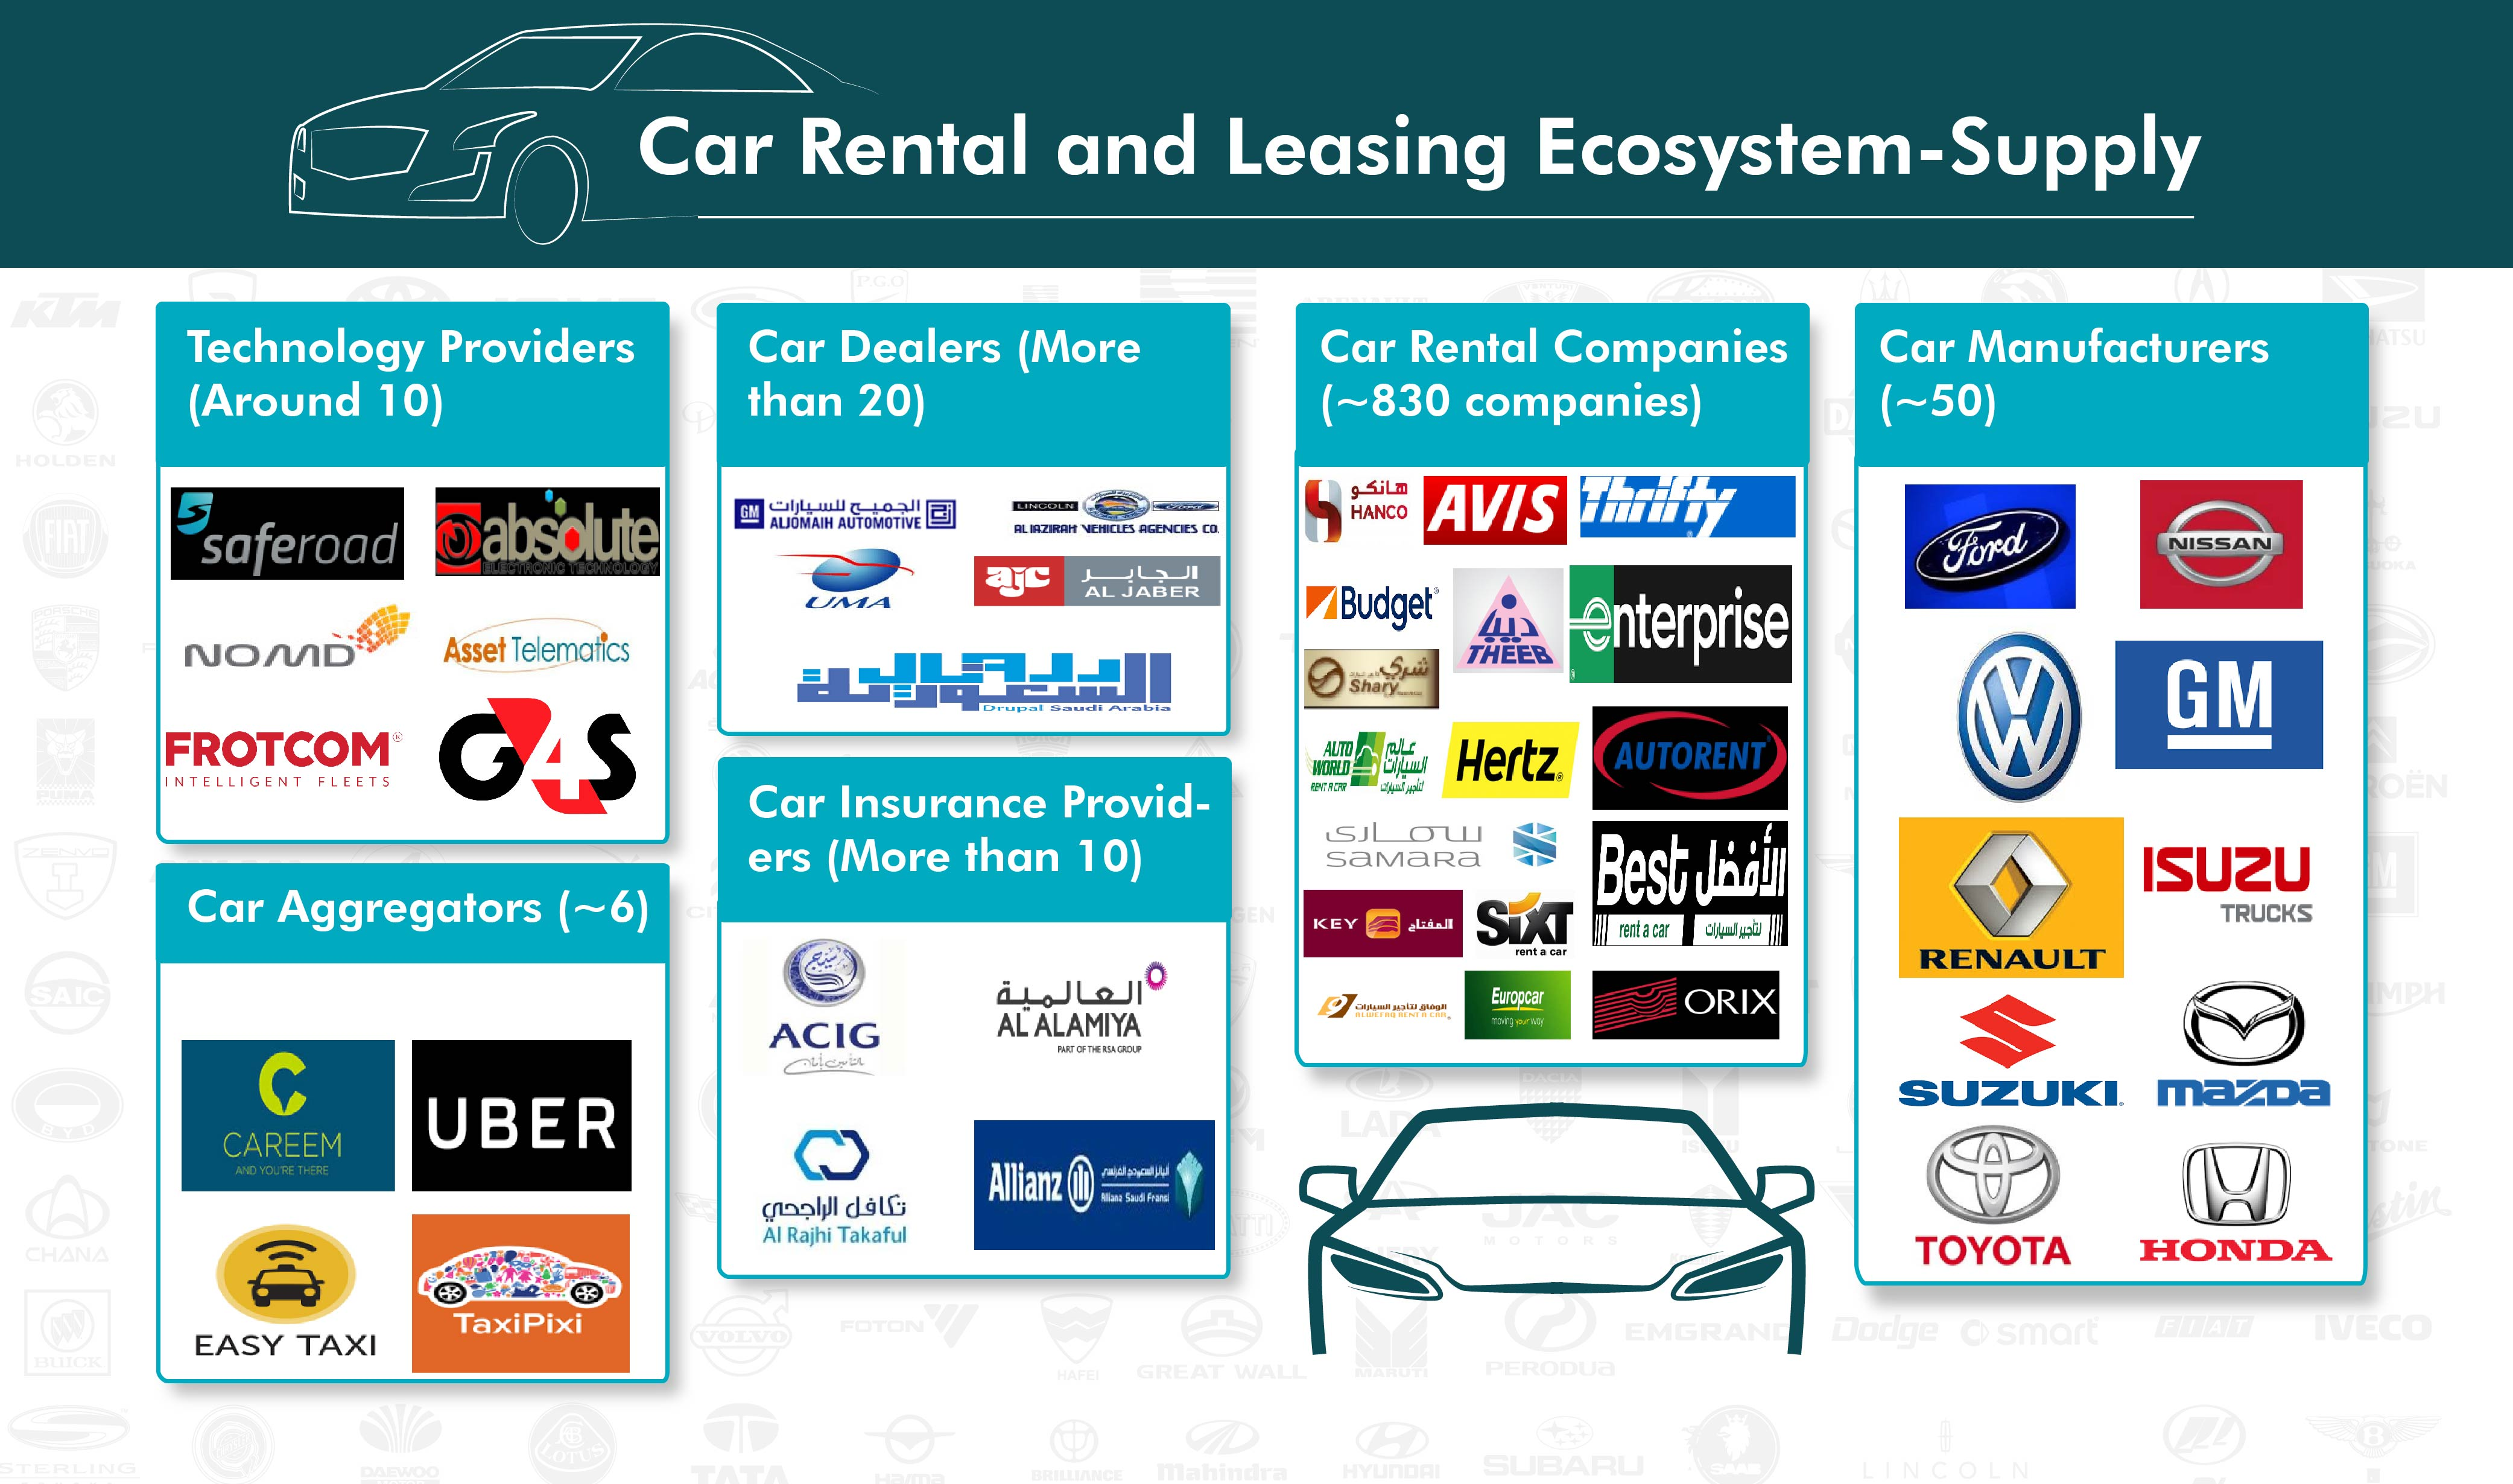 Car Rental and Leasing Ecosystem-Supply